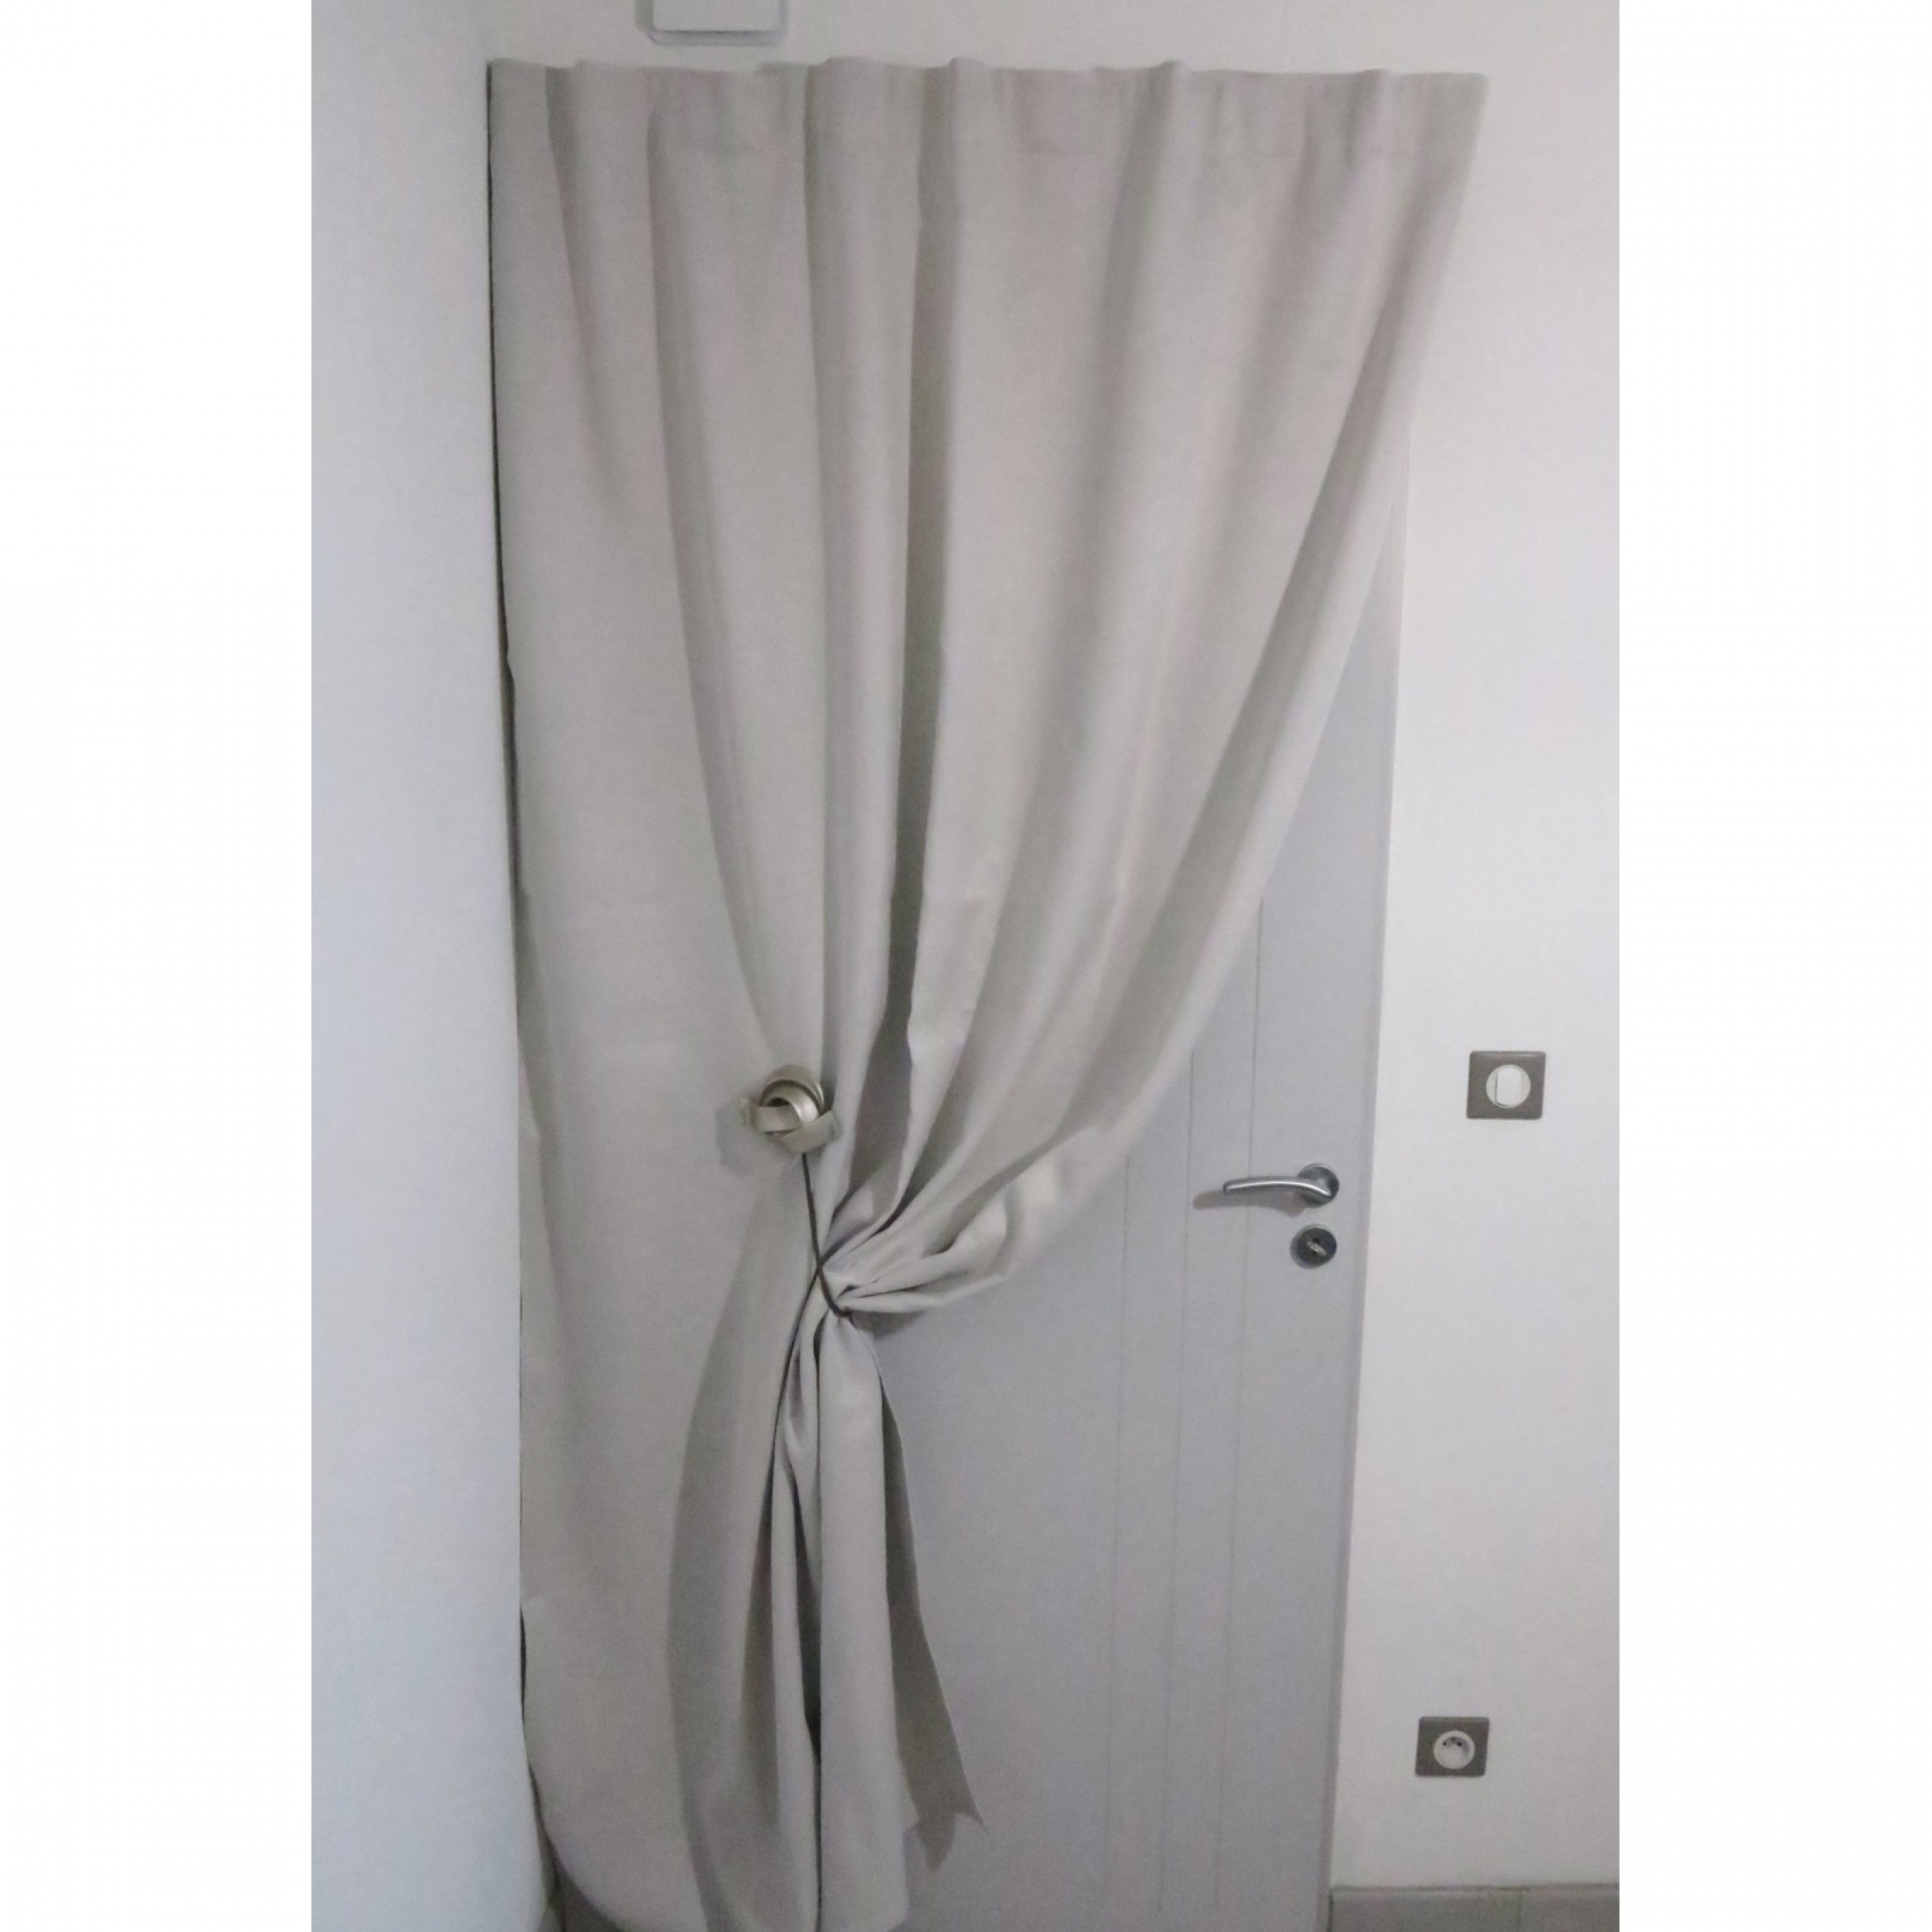 Tringle rideaux pour porte d 39 entr e for Tringle porte d entree